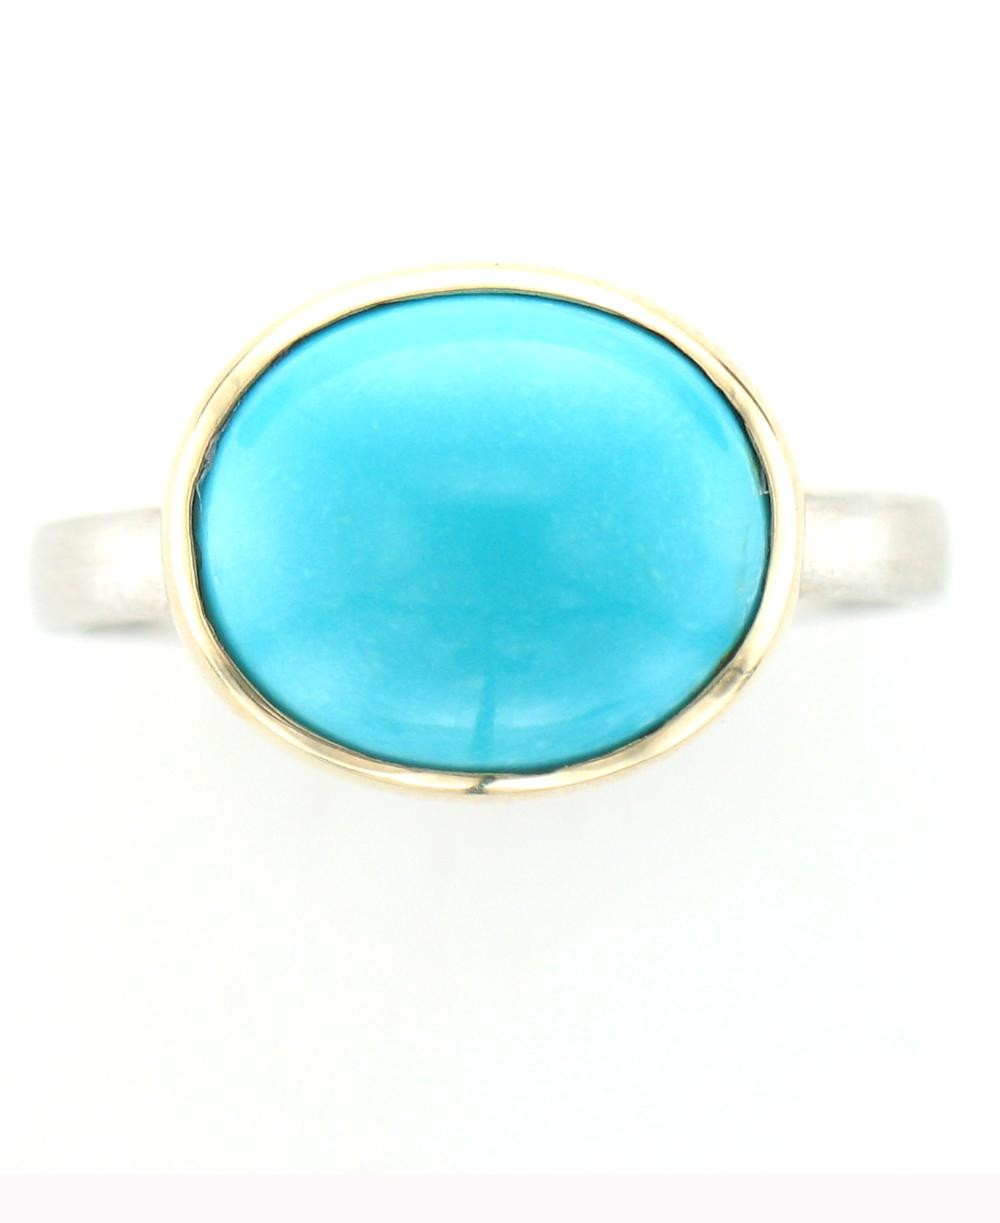 Sleeping Beauty Turquoise Ring with 14K Gold Bezel Setting